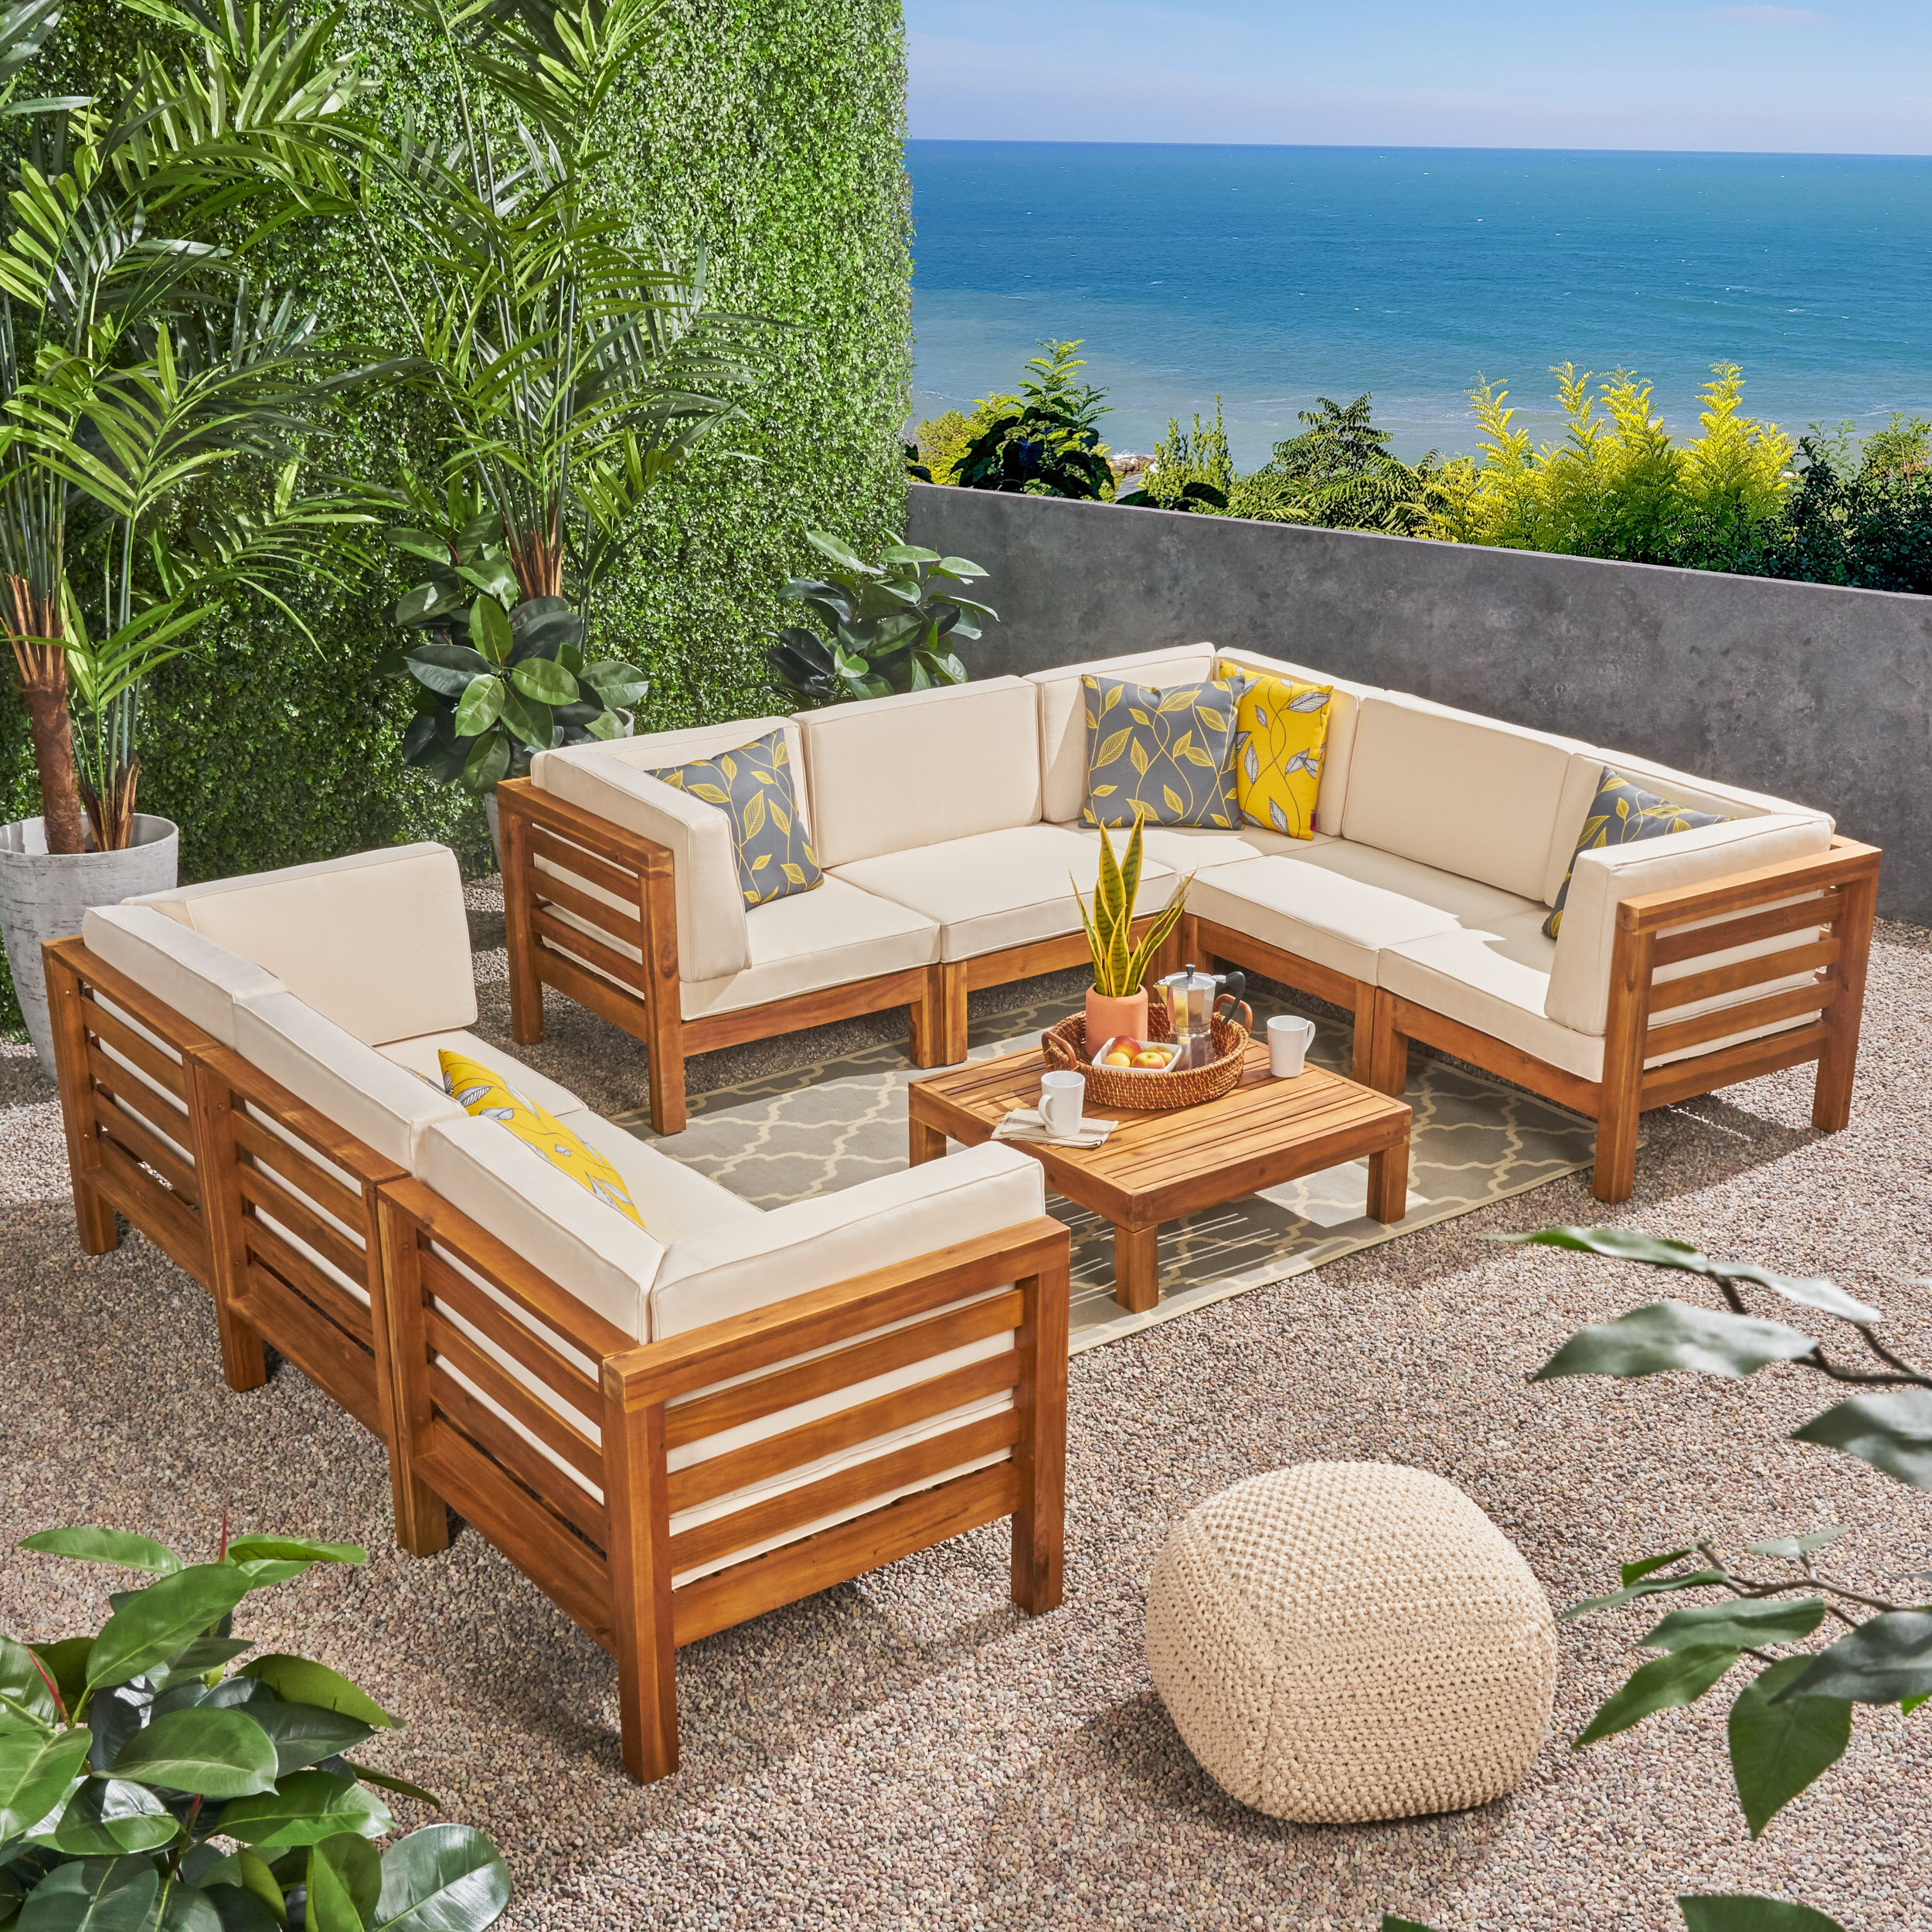 Wayfair With Well Known Jamilla Teak Patio Sofas With Cushion (Gallery 18 of 25)